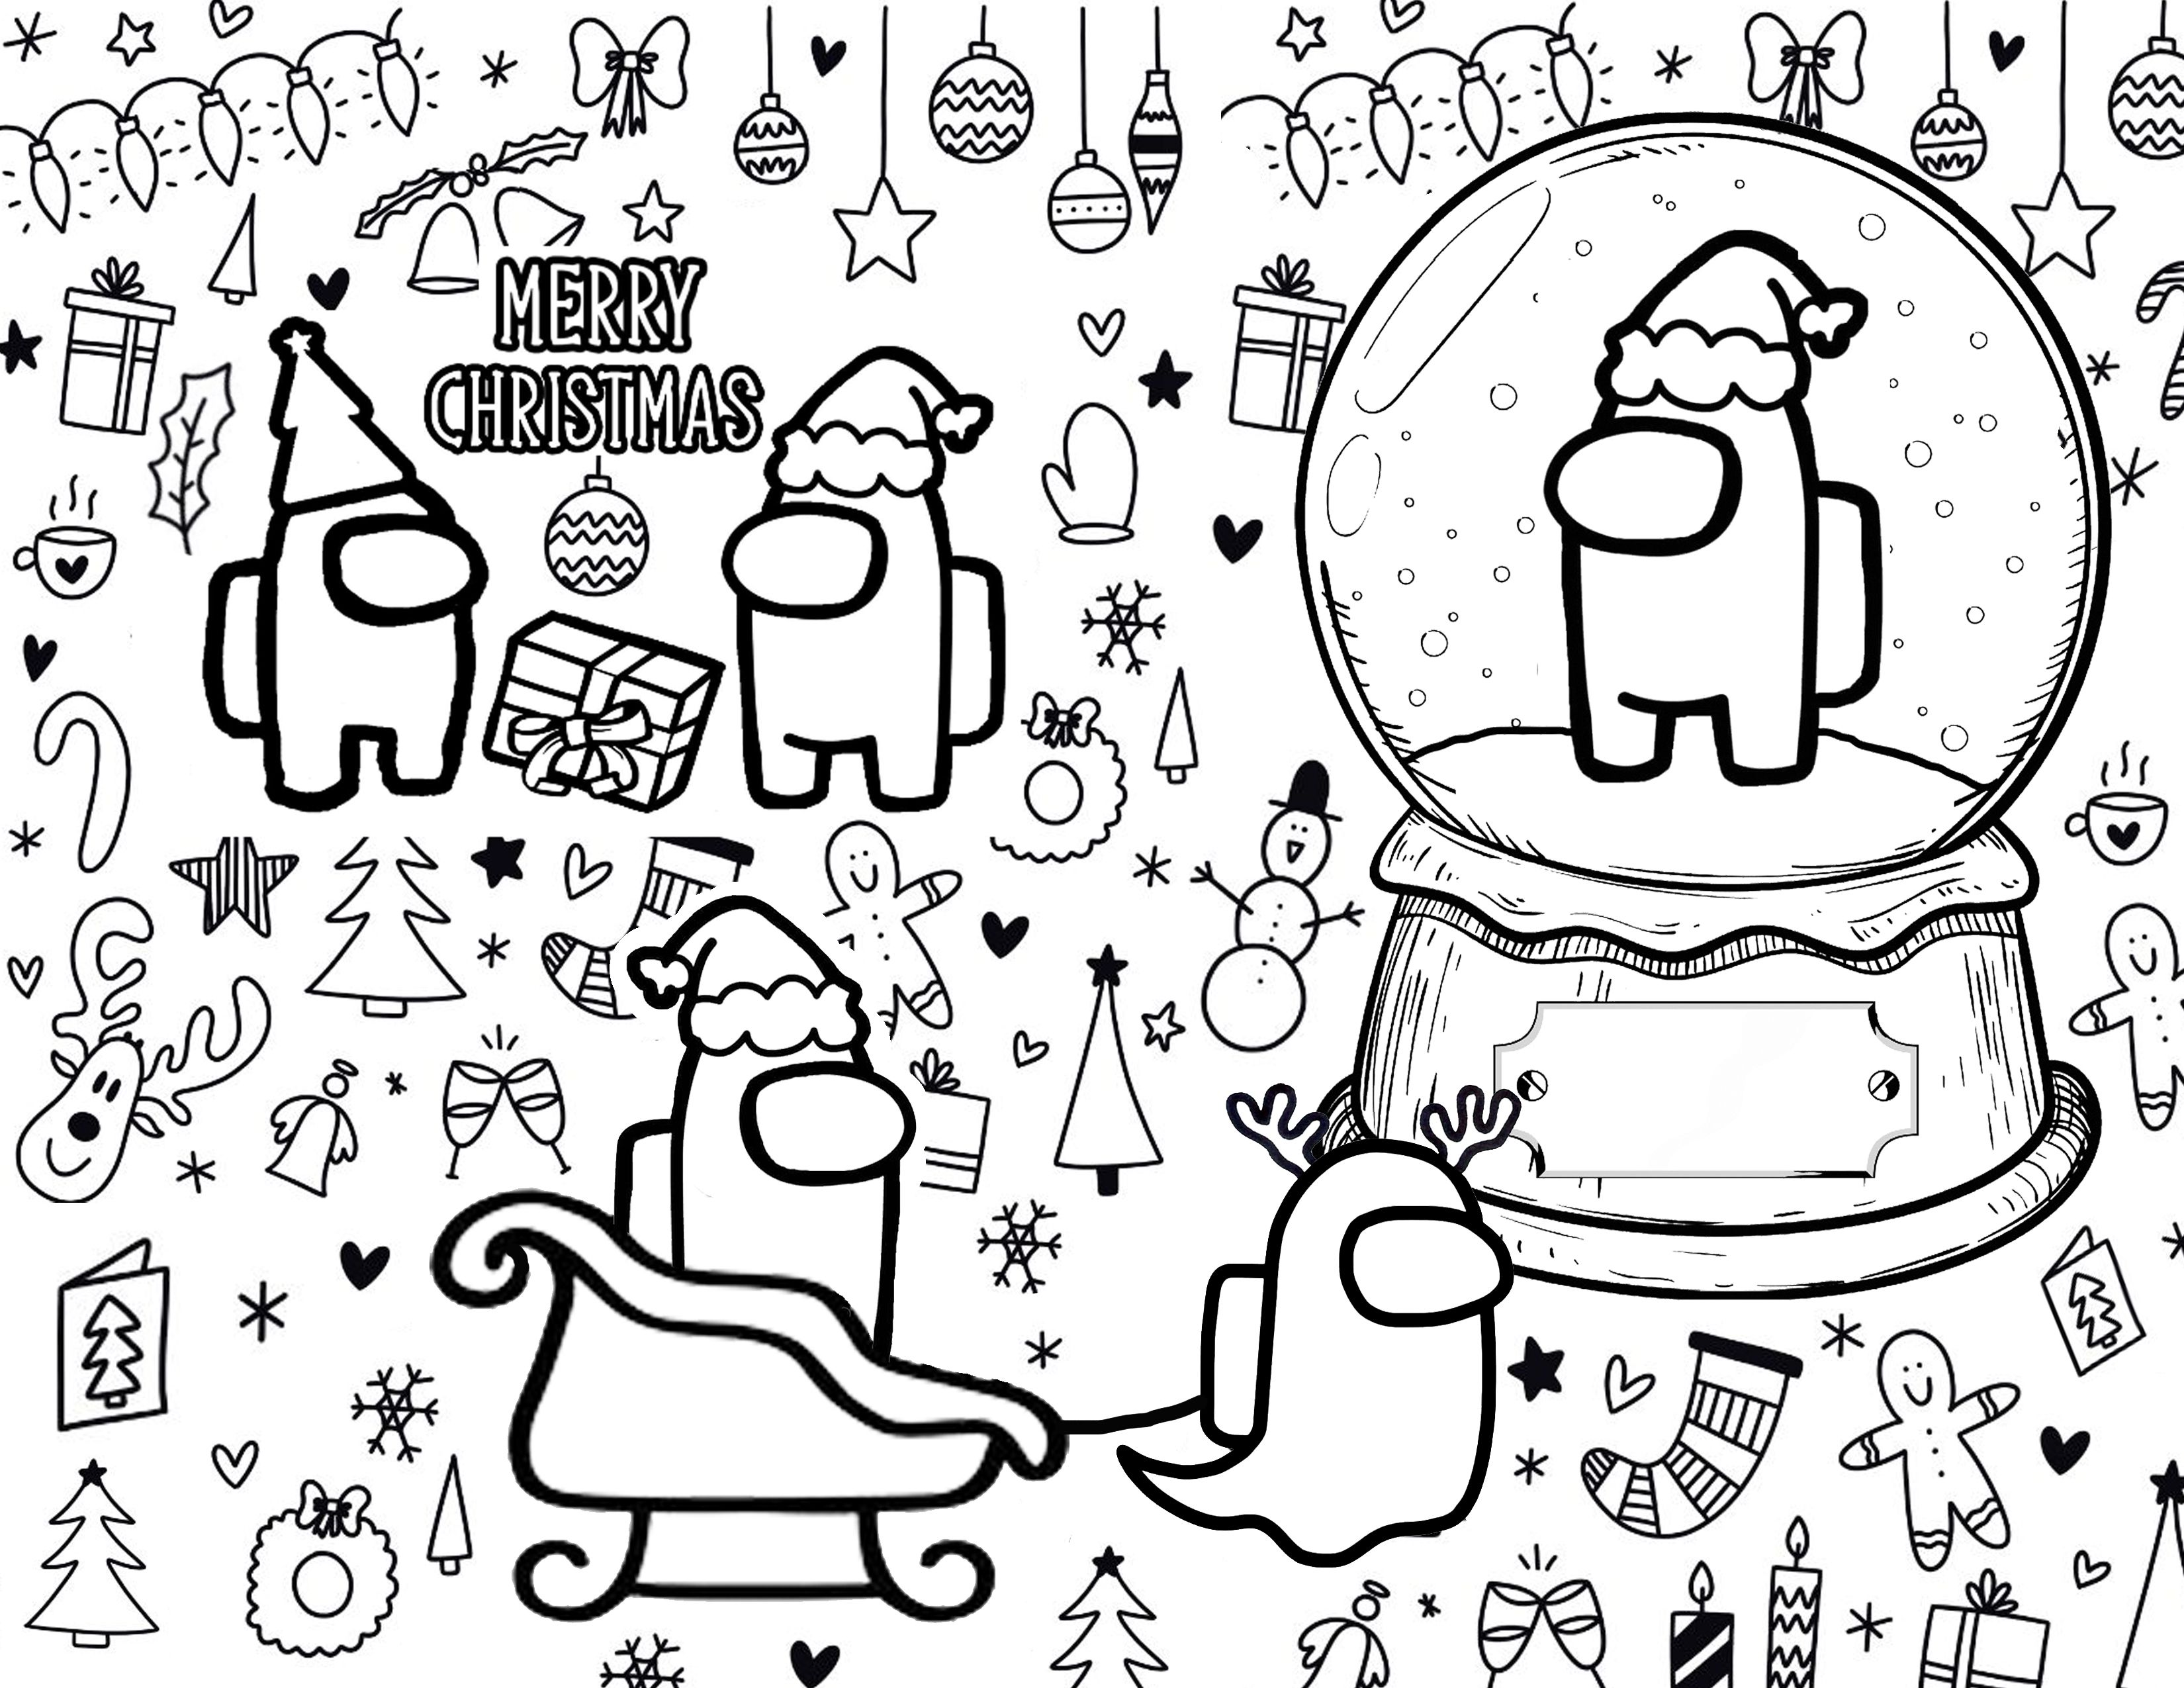 Among Us Coloring Page Merry Susmas Coloring Pages Christmas Coloring Sheets Coloring Sheets